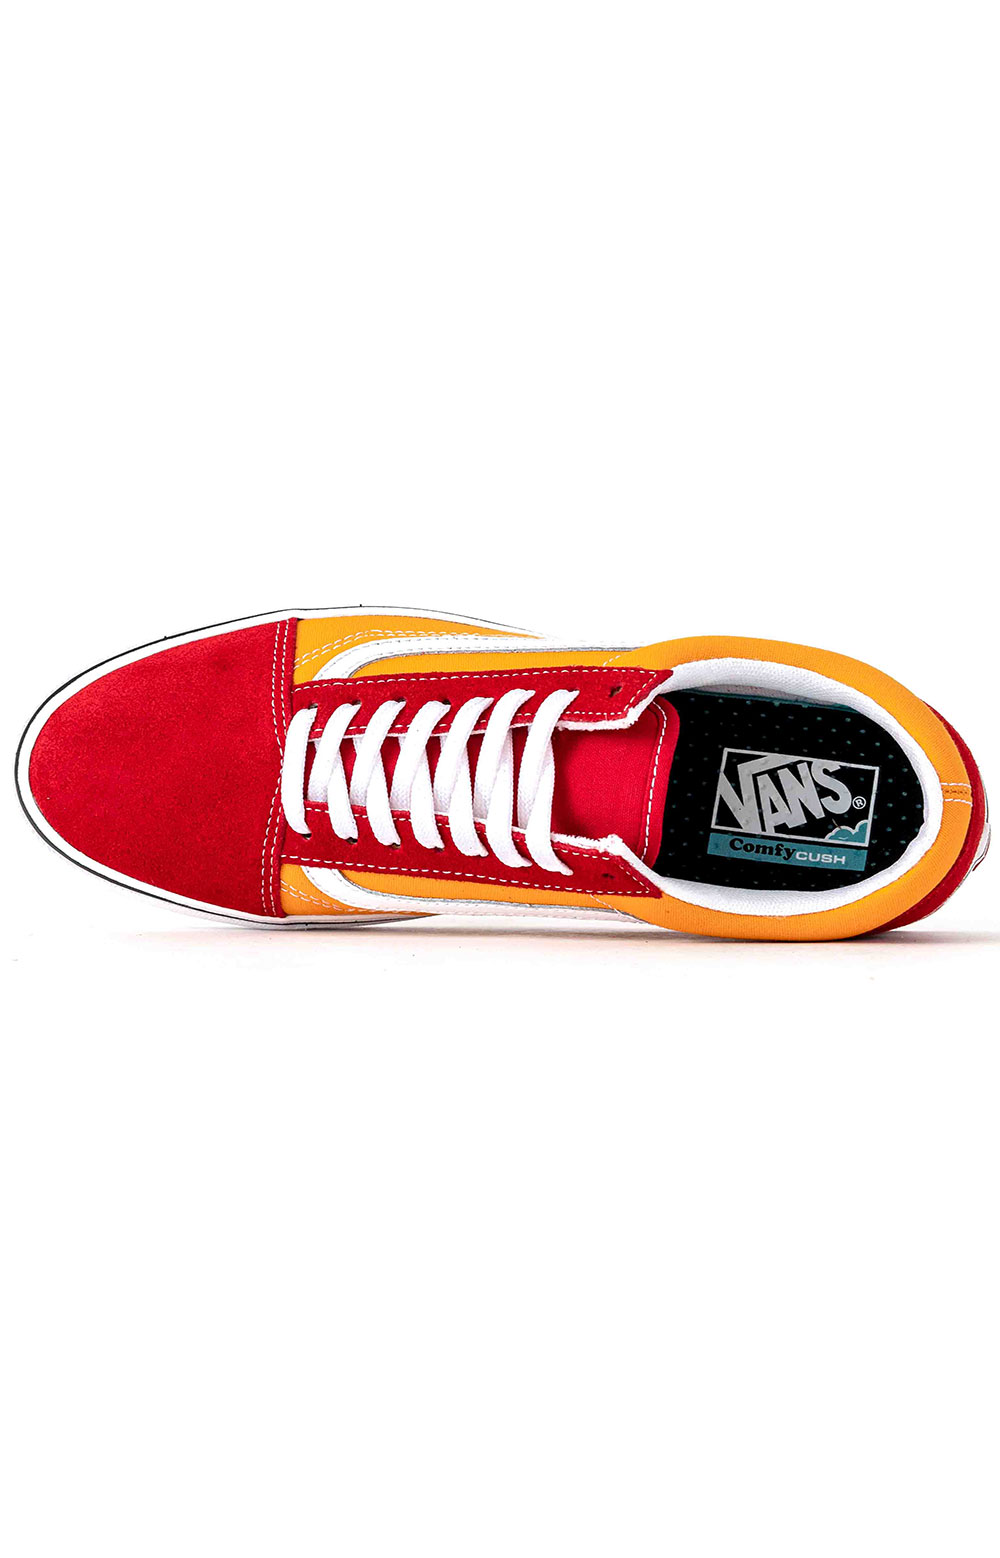 (WMAWX4) Tape Mix Old Skool ComfyCush Shoes - Red 2